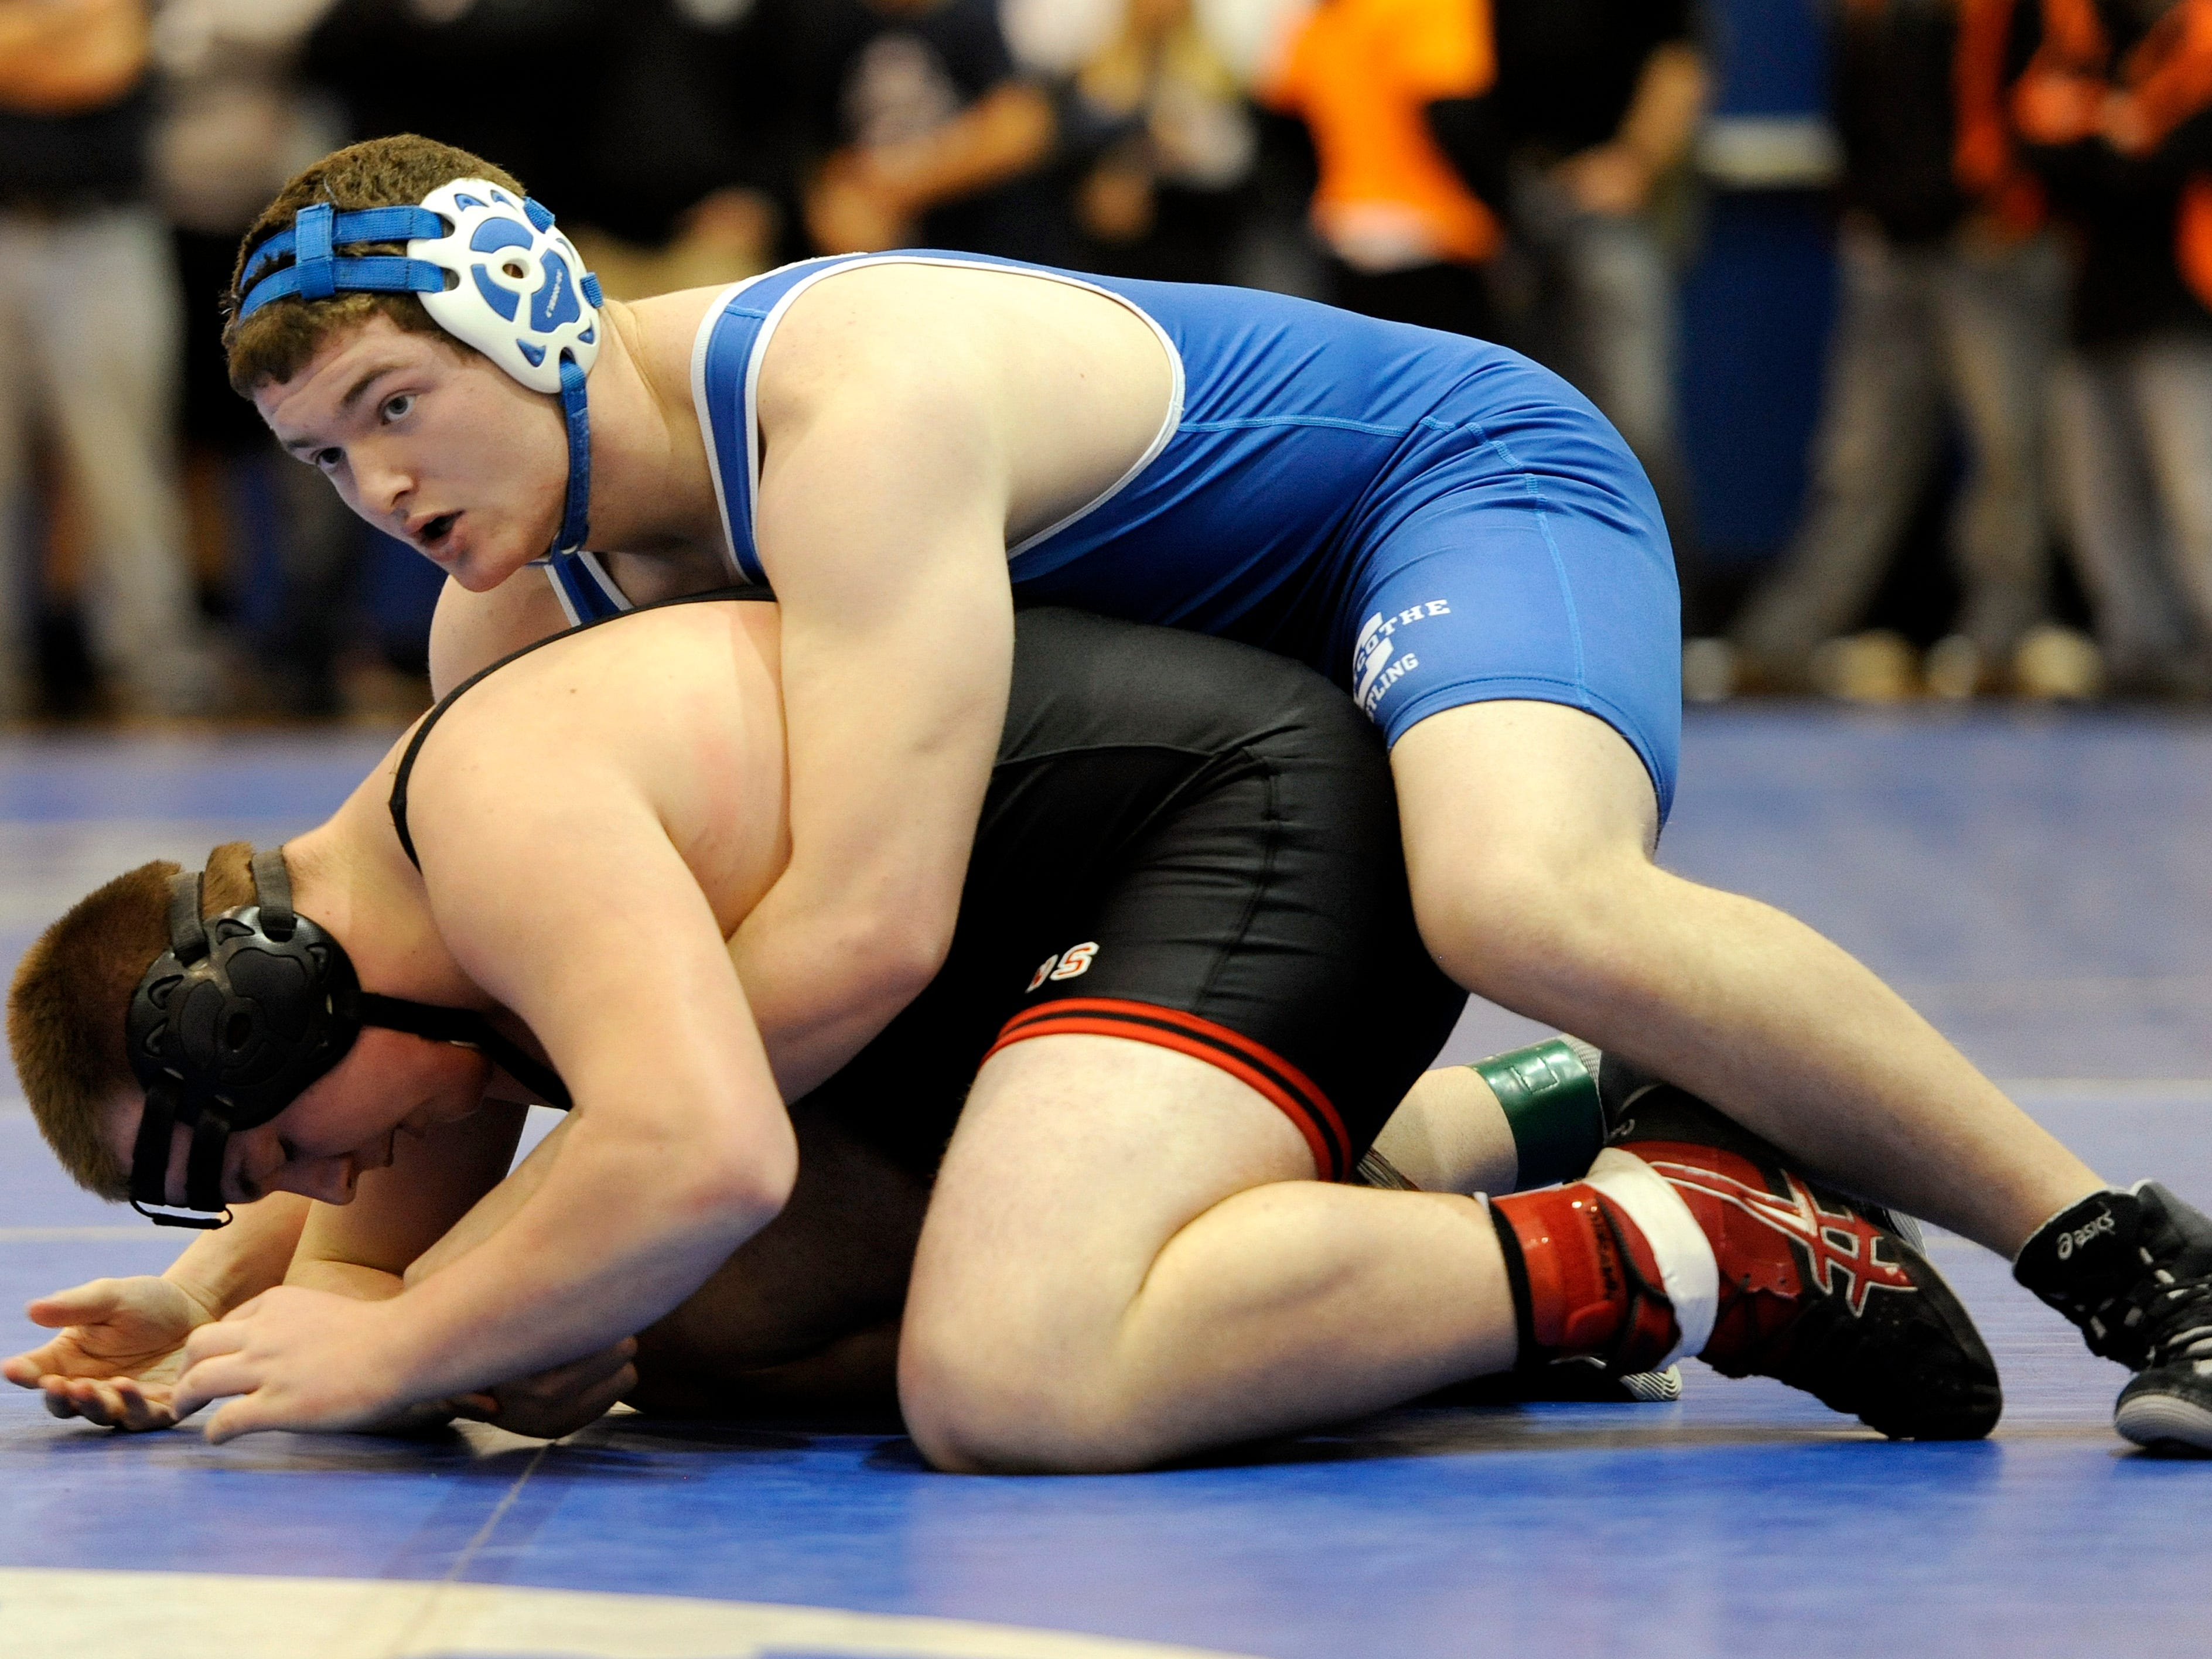 Chillicothe's Austin Mathis wrestles New Richmond's Justin Noble in the 220 pound weight class during the Division II district wrestling tournament at Southeastern High School, March 7.